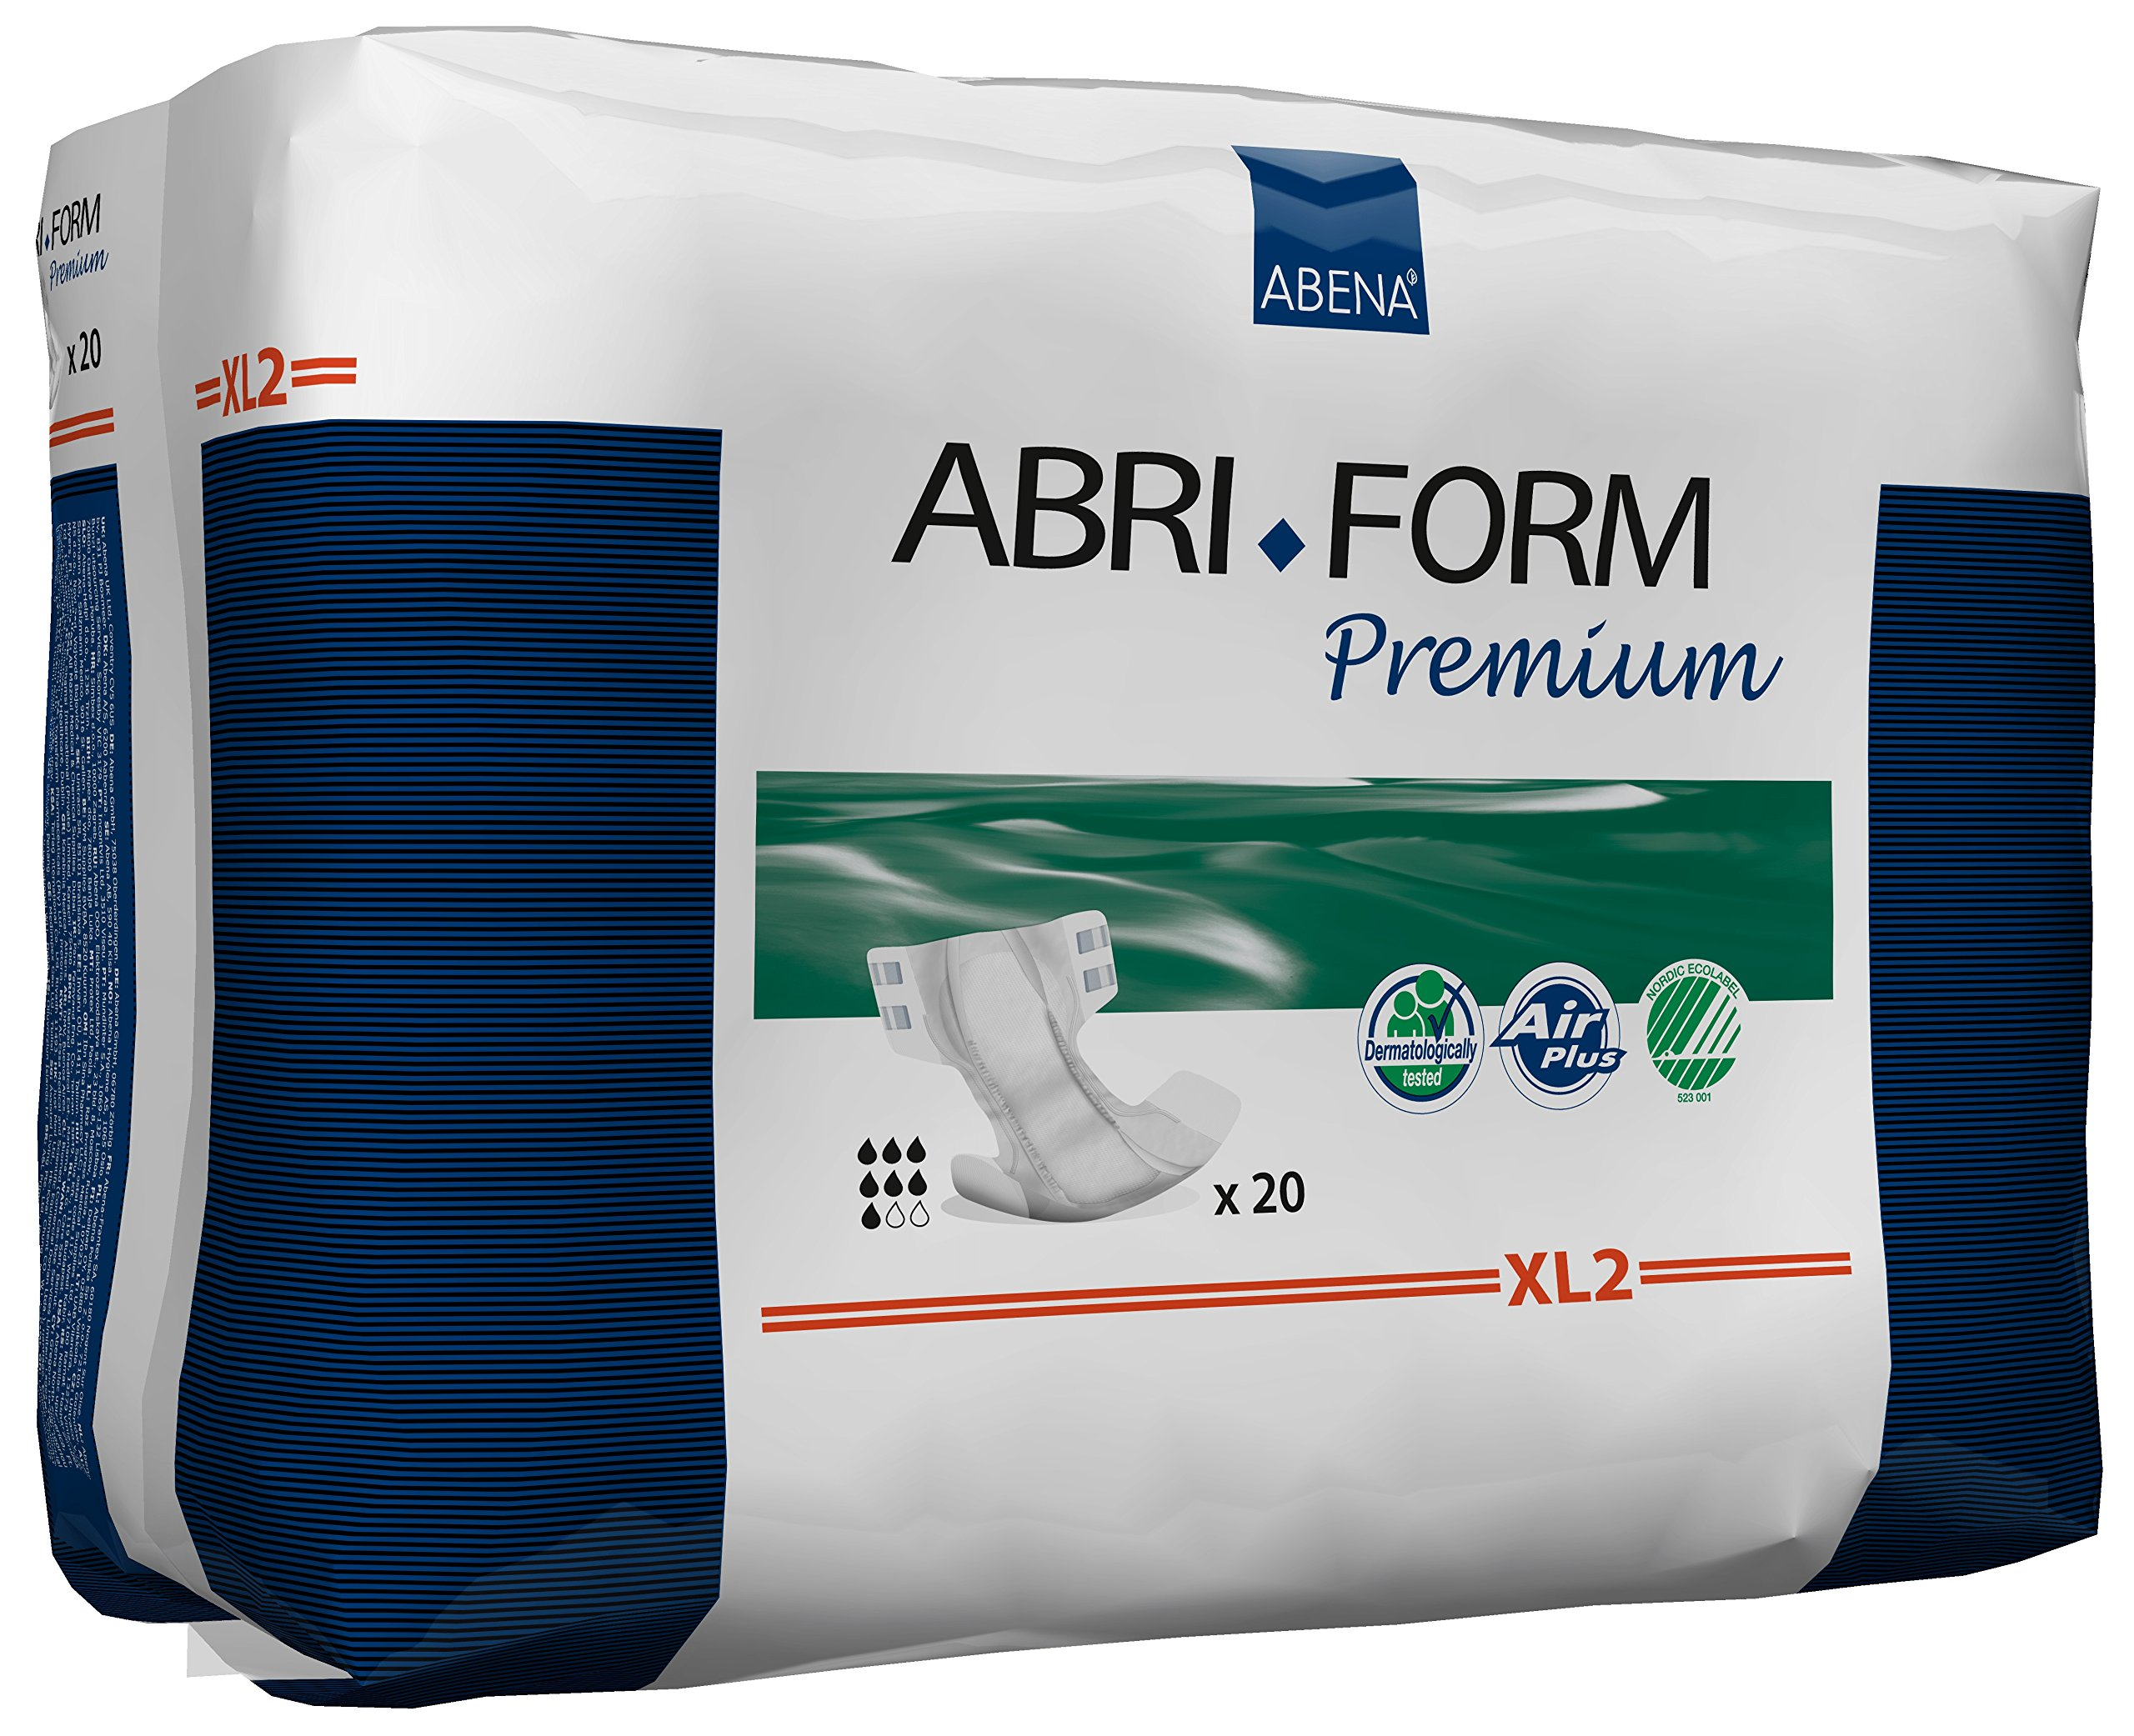 Abena Abri-Form Premium Incontinence Briefs, Extra Large, XL2, 80 Count (4 Packs of 20)